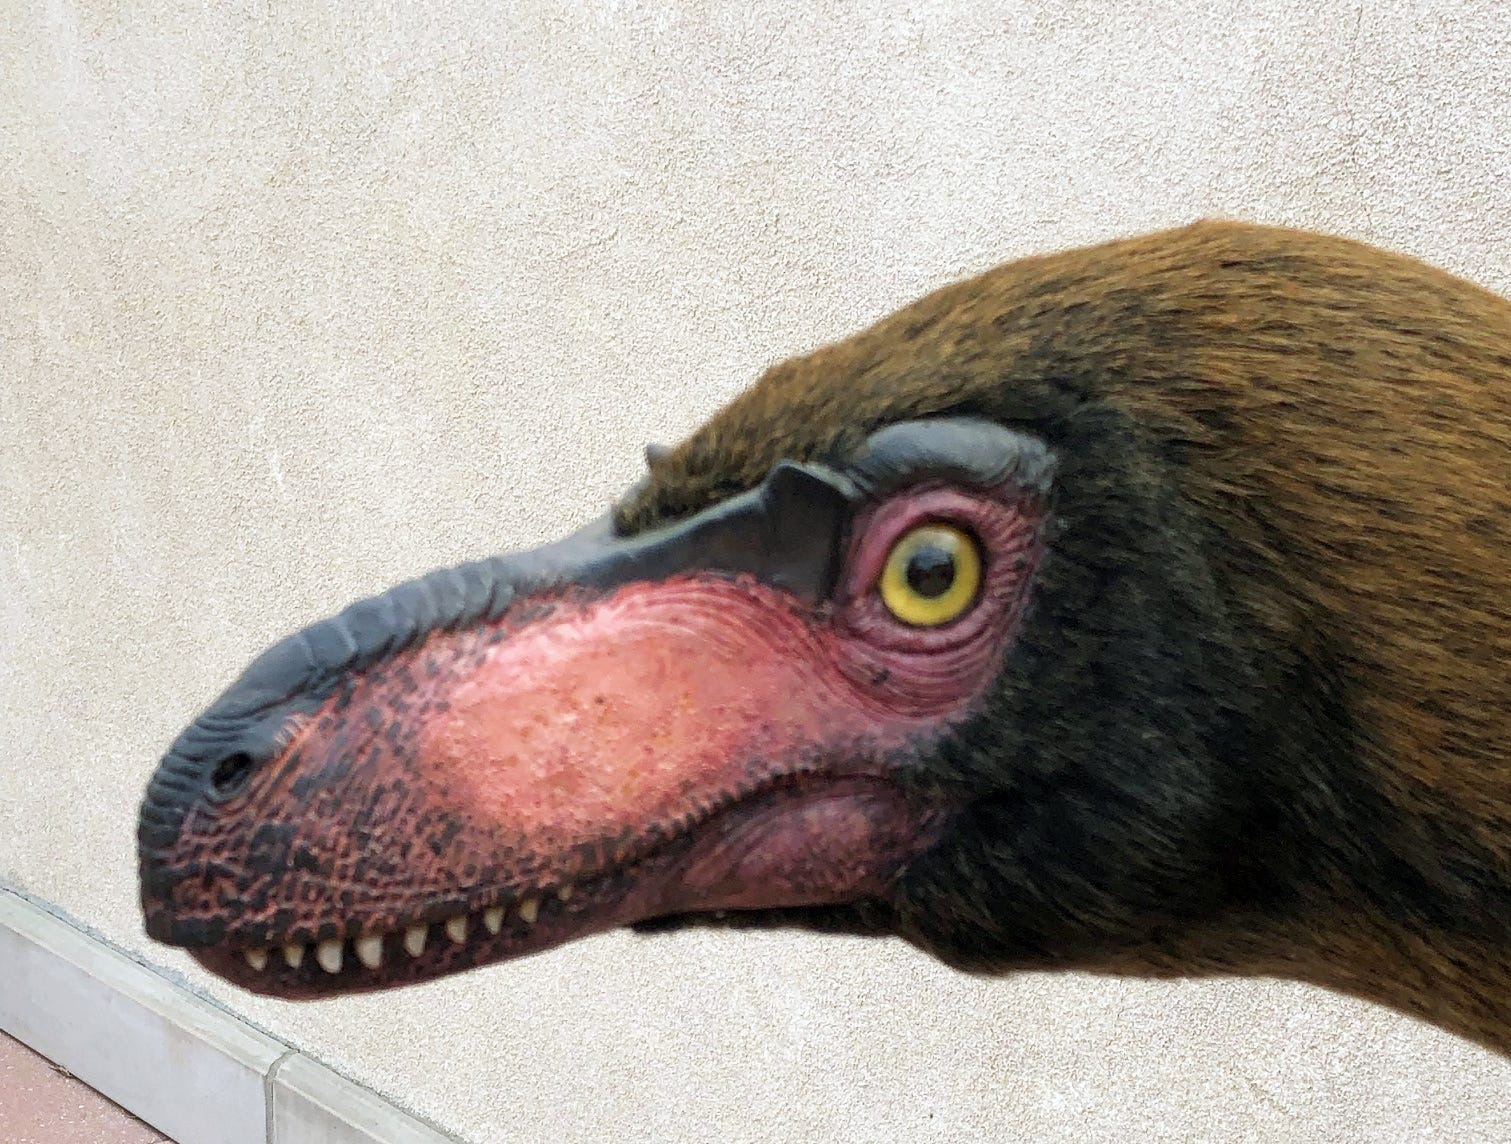 The Suskityrannus, a cousin of the T. rex, stood only 3 feet tall. Bones were first discovered by a Mesa native in 1998, but scientists for years weren't able to positively ID them.